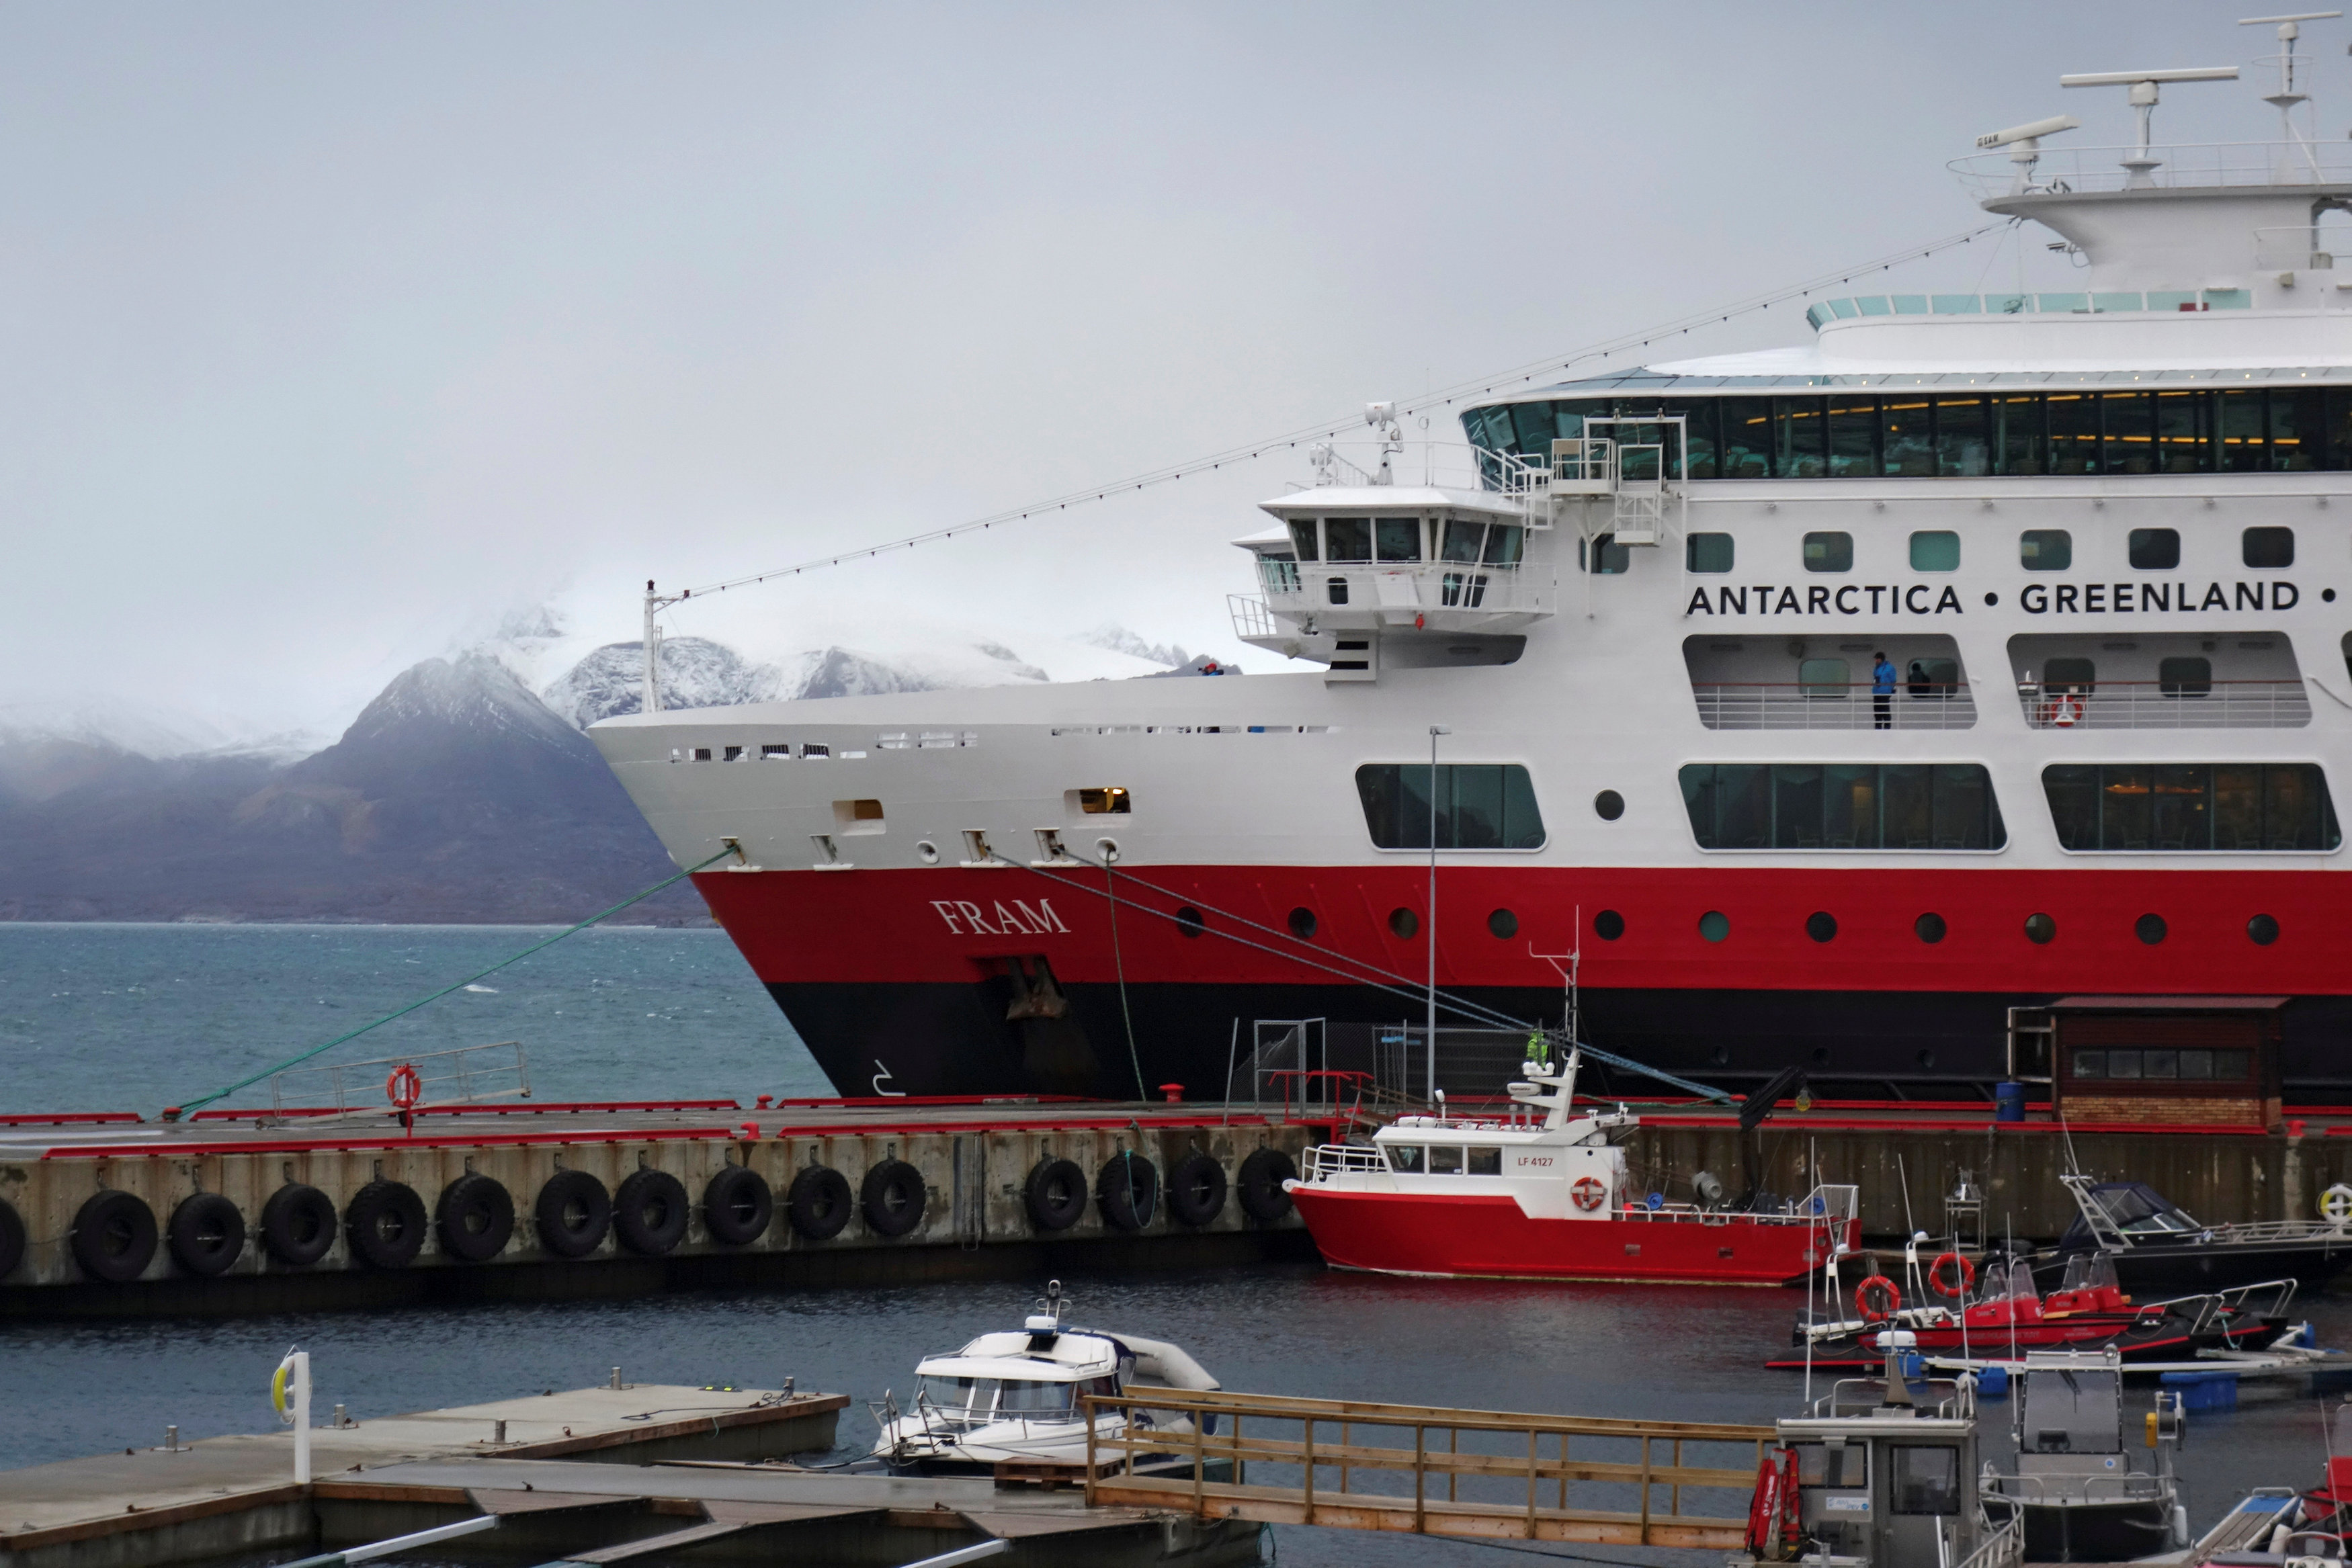 A tourist cruise ship is docked at the port of research town Ny-Aalesund in the Arctic archipelago of Svalbard, Norway, on Sept. 21, 2016. (Gwladys Fouche / Reuters)